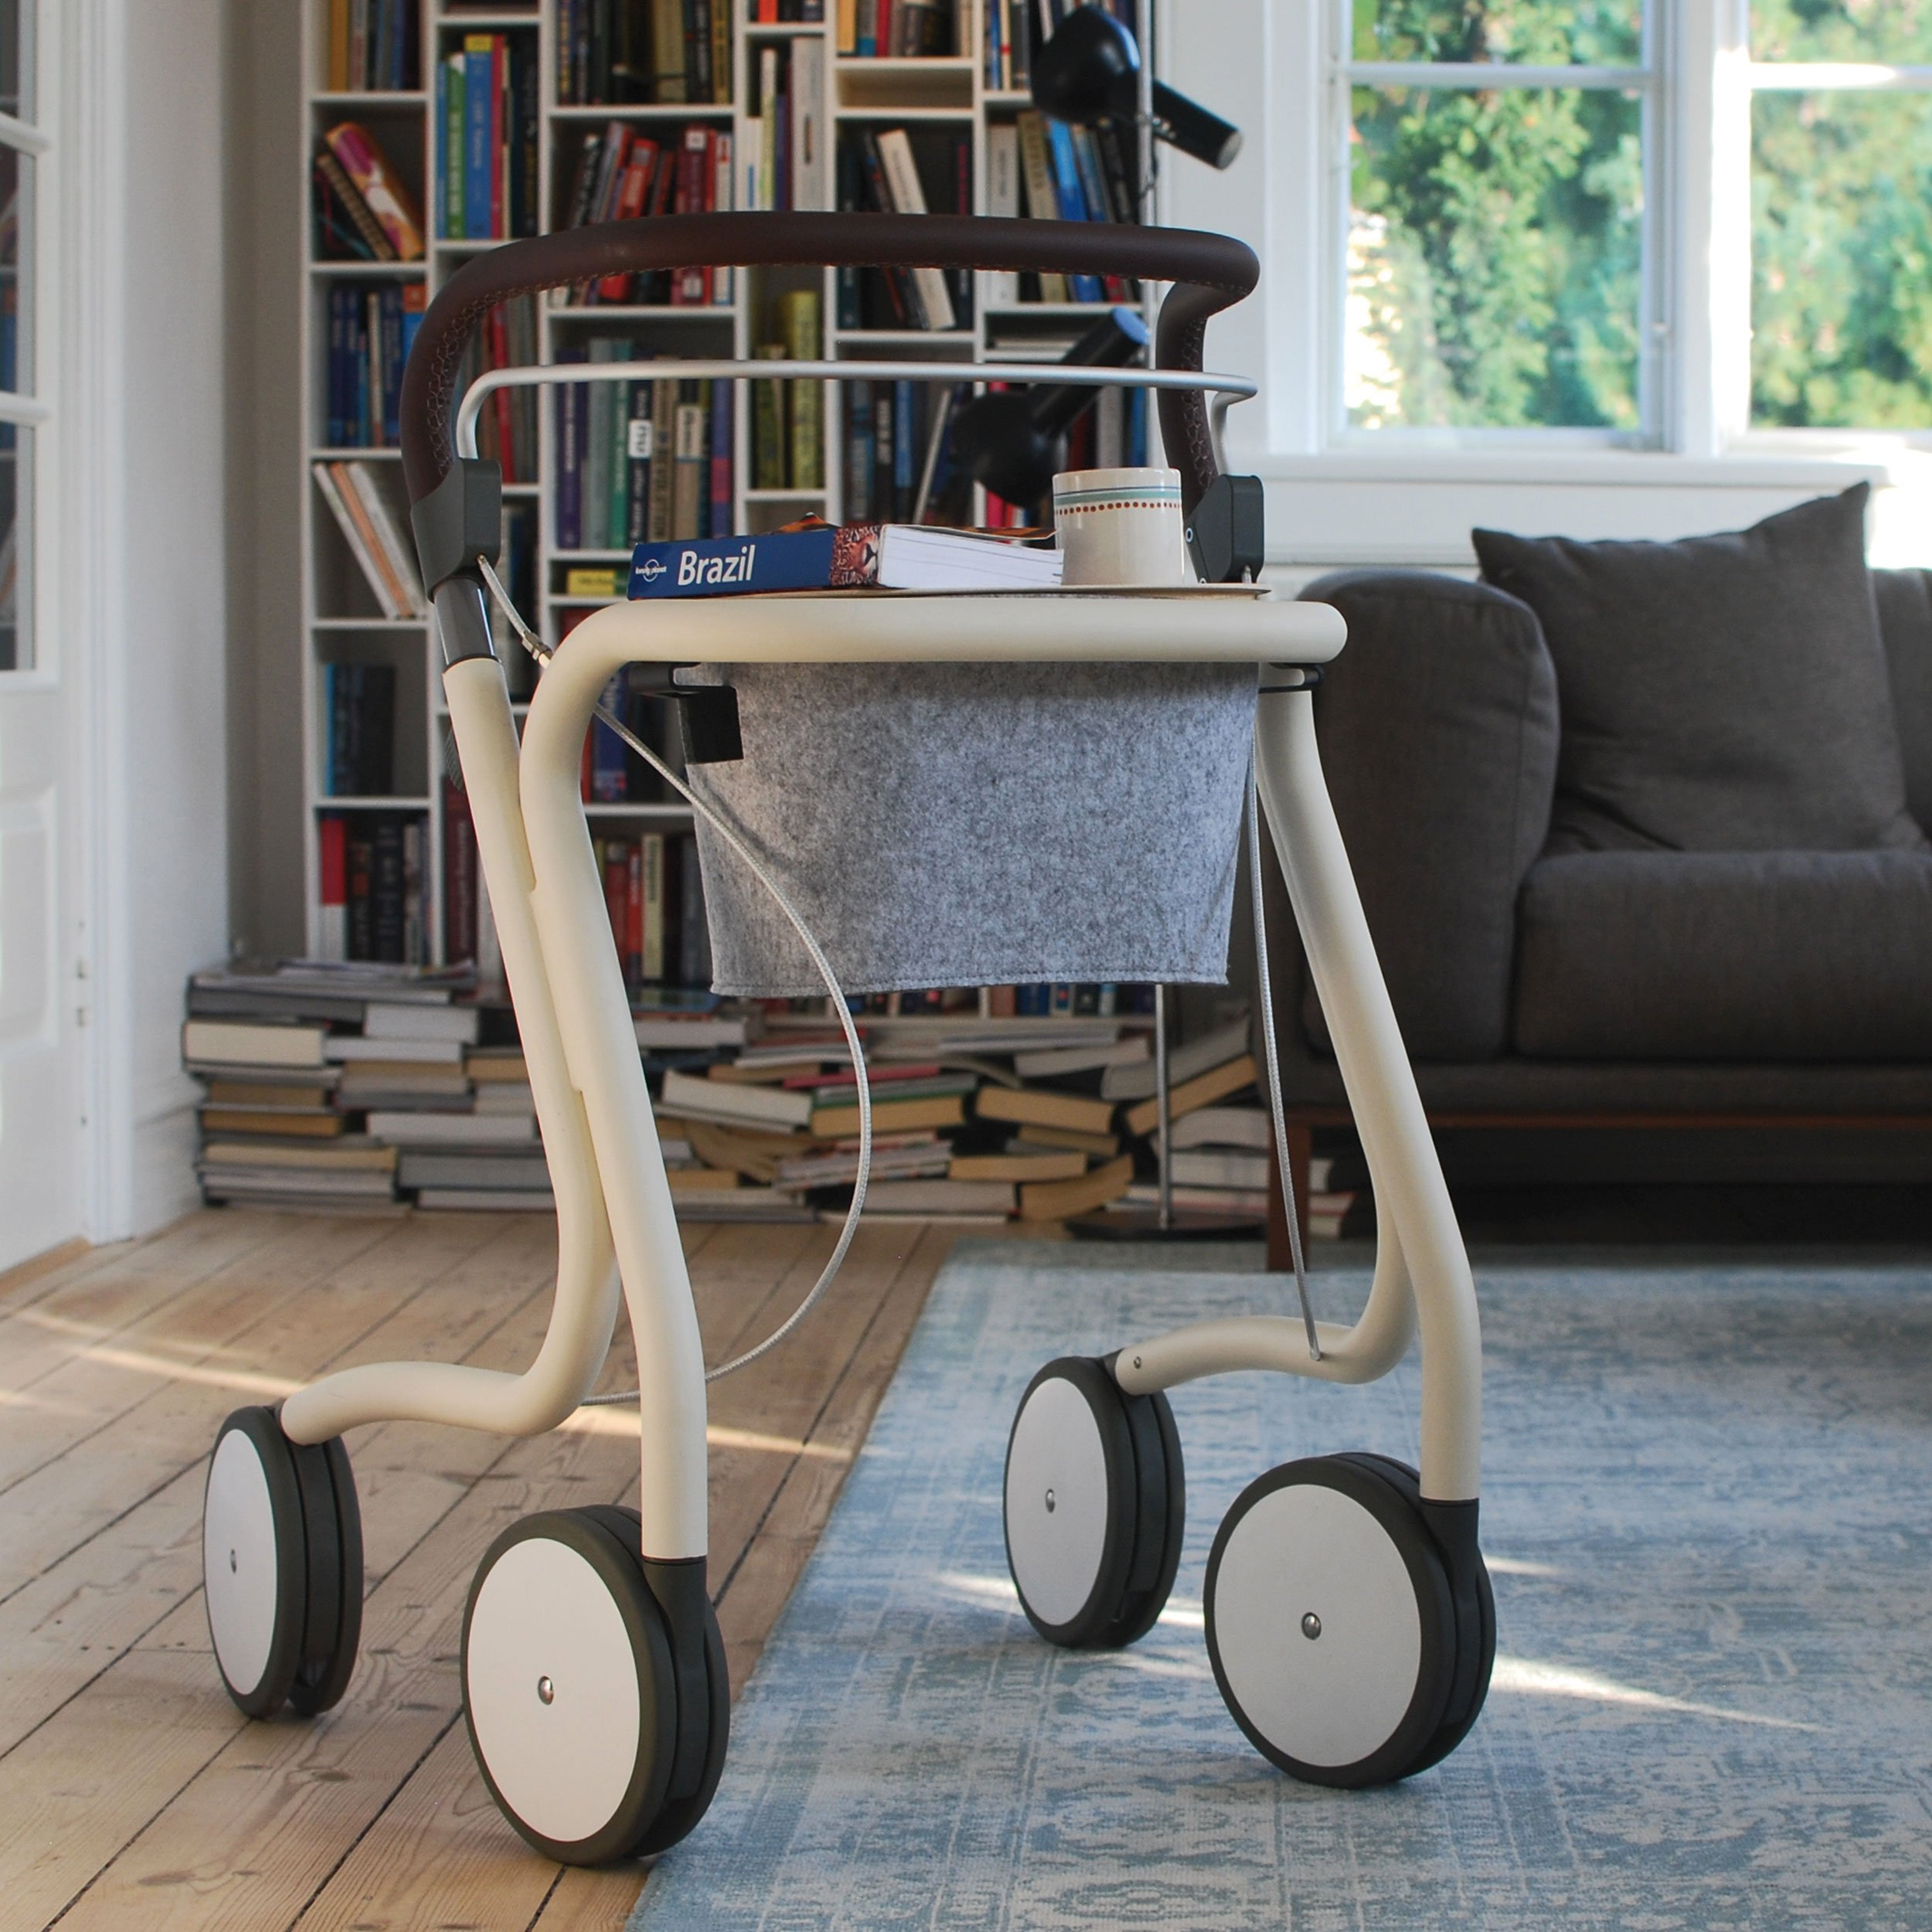 White Scandinavian Butler Rollator byACRE - seen in perspective in a living room setting